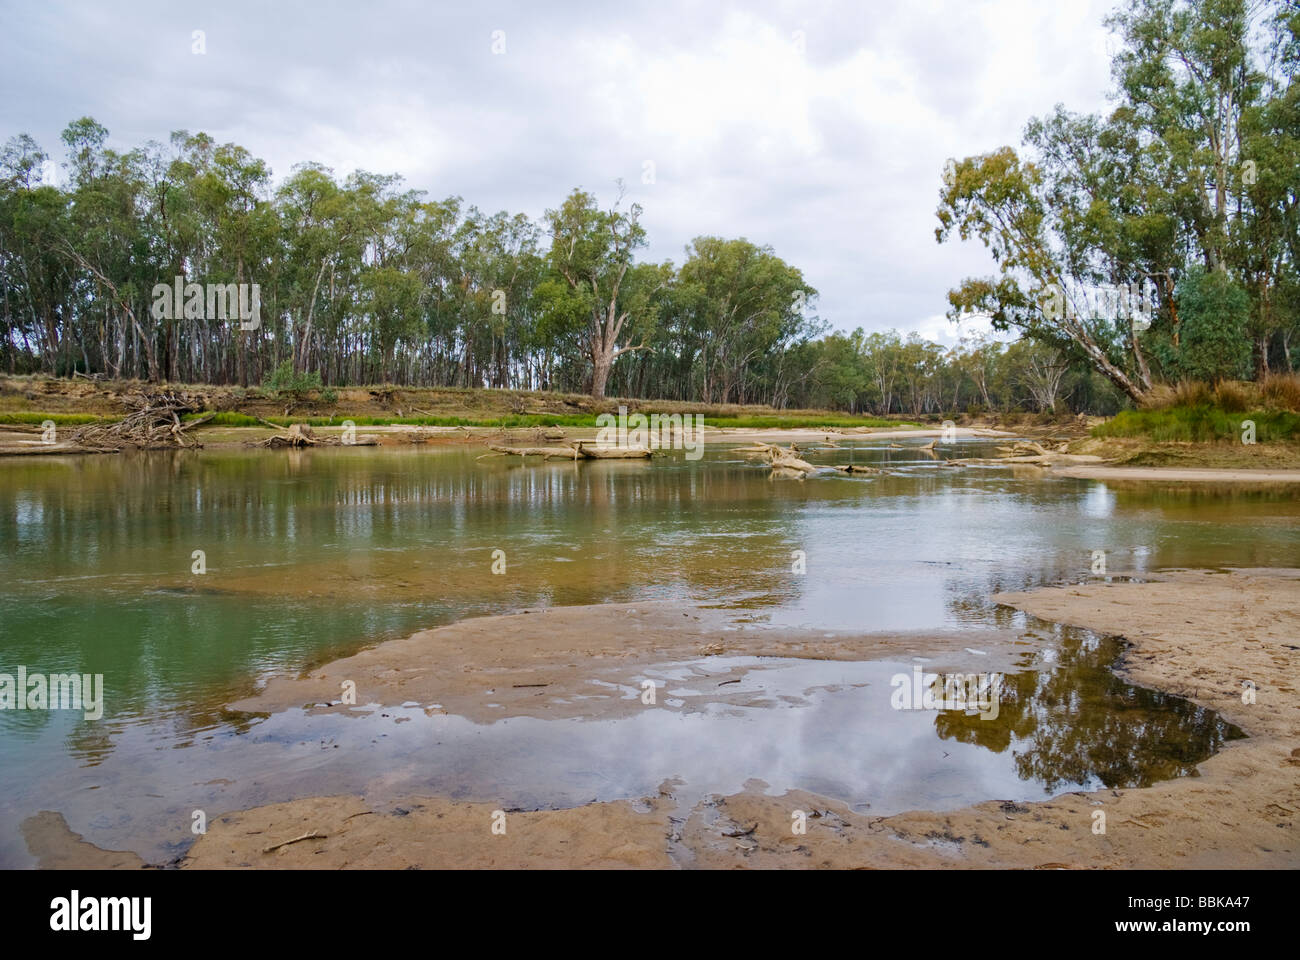 Low water levels in Australia's Murray River - Stock Image